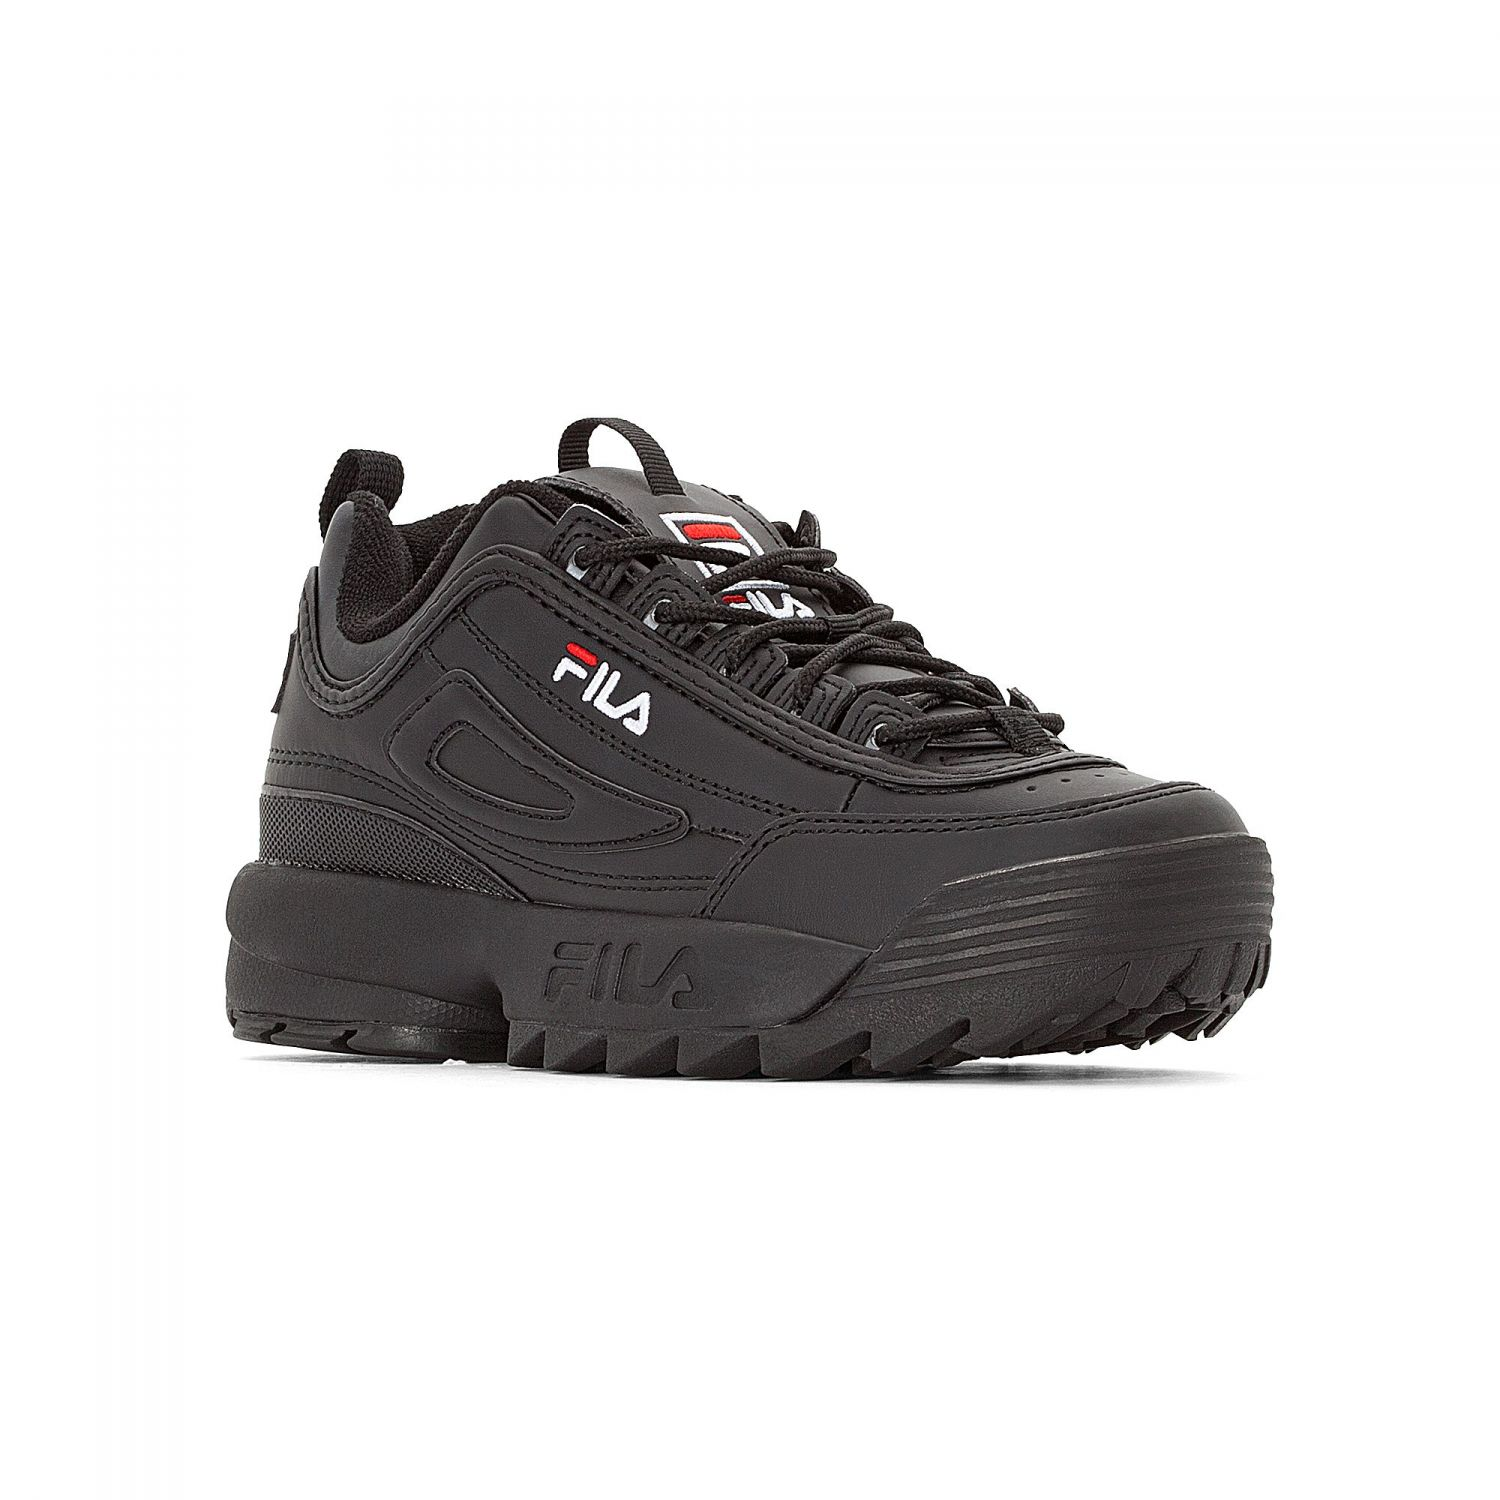 ca27bedea144 Fila - Disruptor Low Wmn all black - 00014201667300 ...